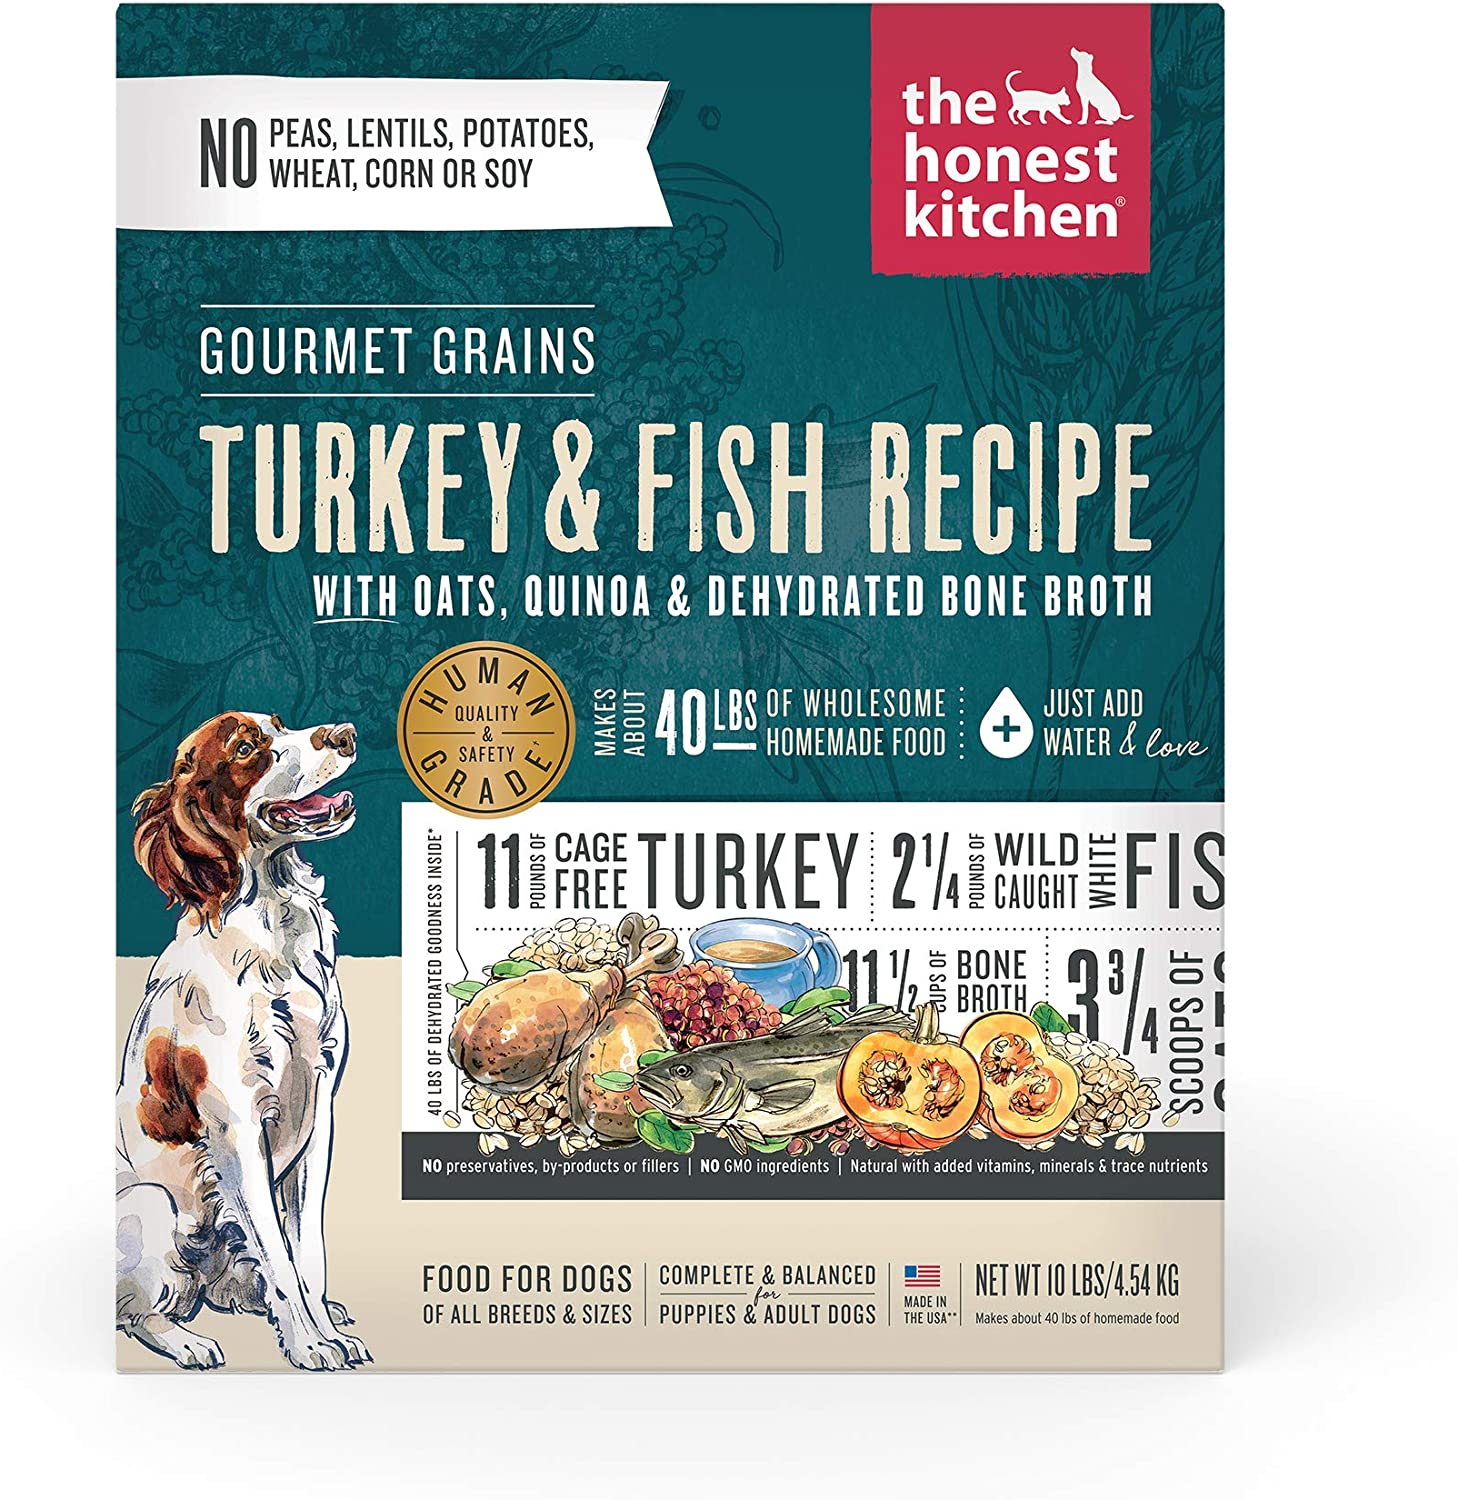 The Honest Kitchen Gourmet Grains Turkey & White Fish Recipe Dehydrated Dog Food, 10 lb box